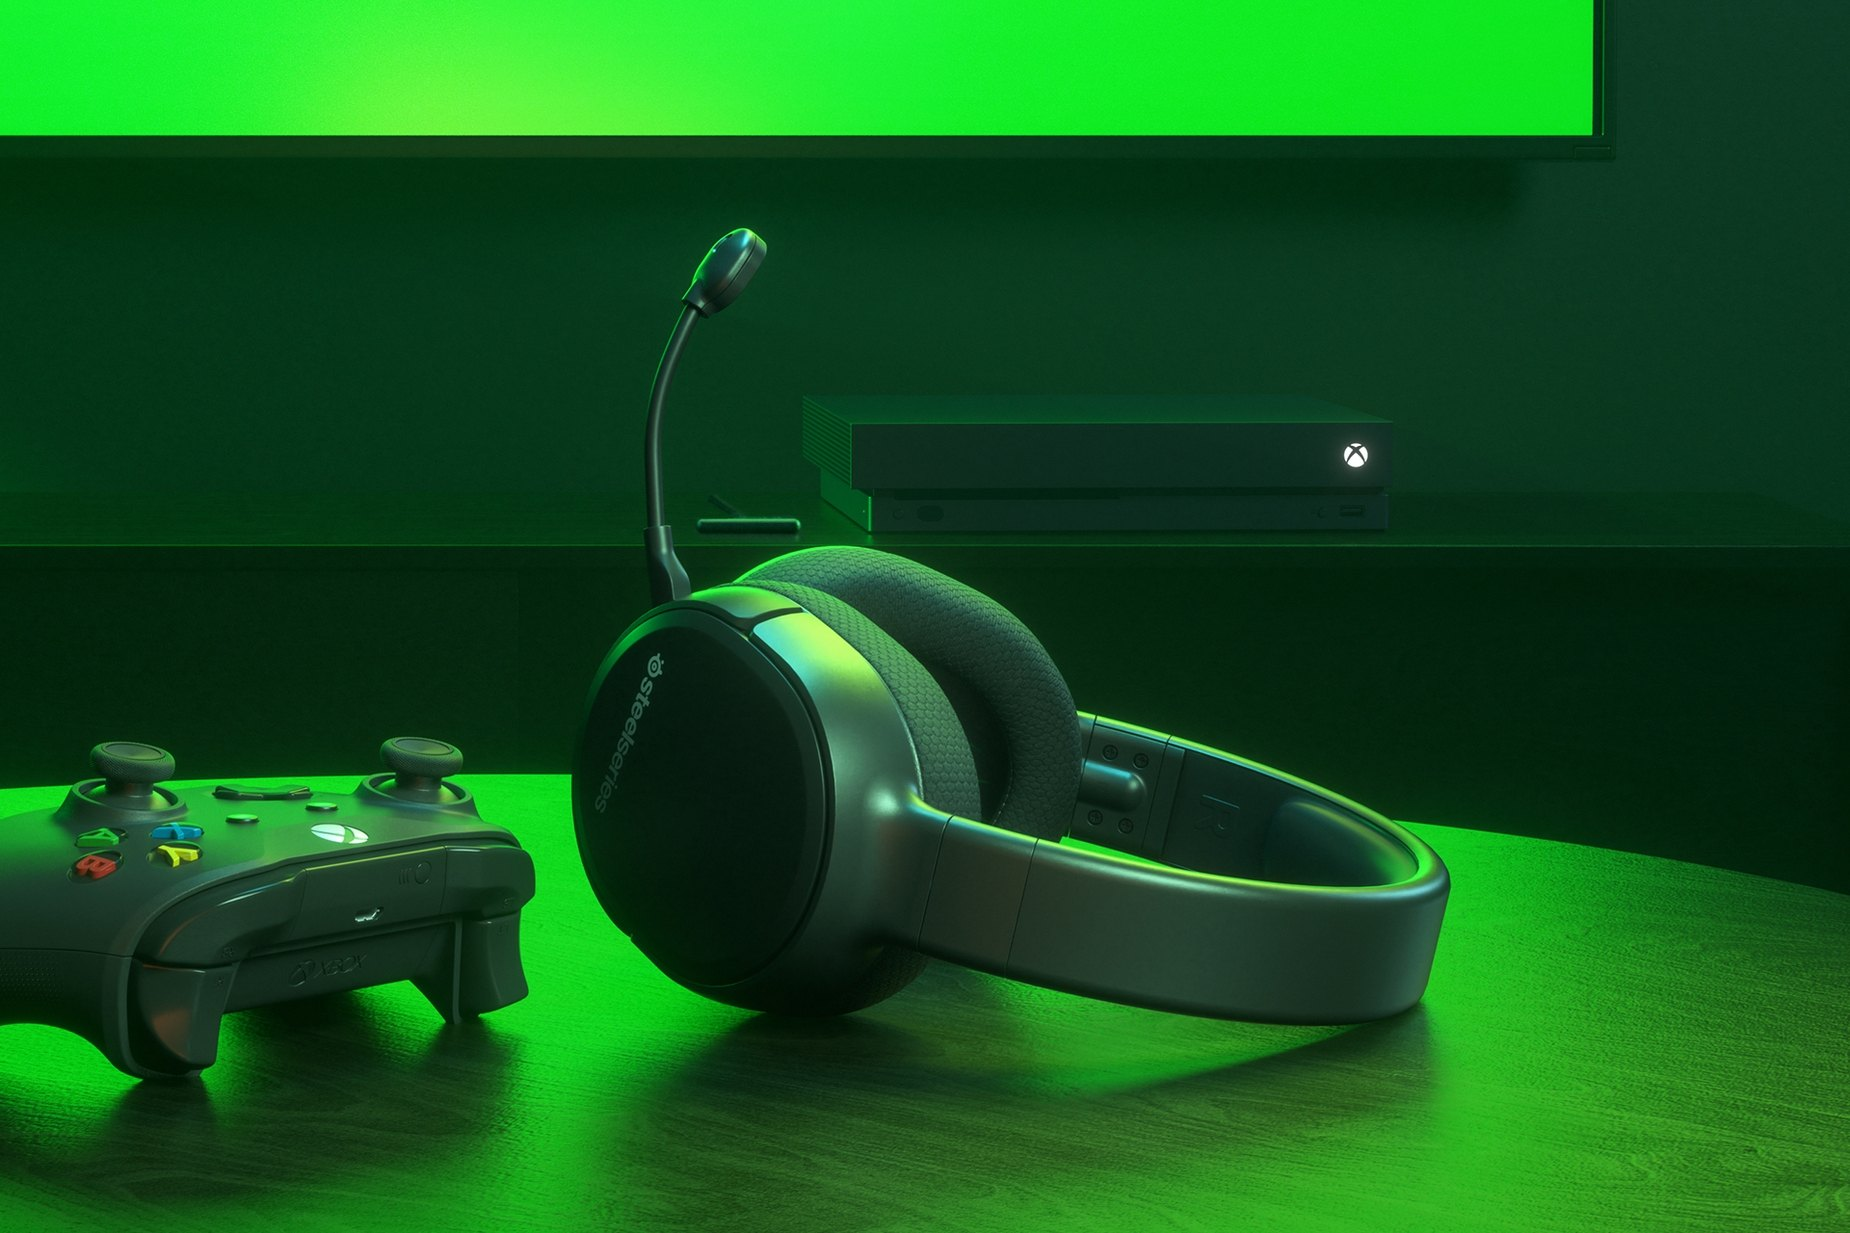 Arctis 1 Wireless for Xbox gaming headset on table with a Xbox controller and an Xbox game console in the background